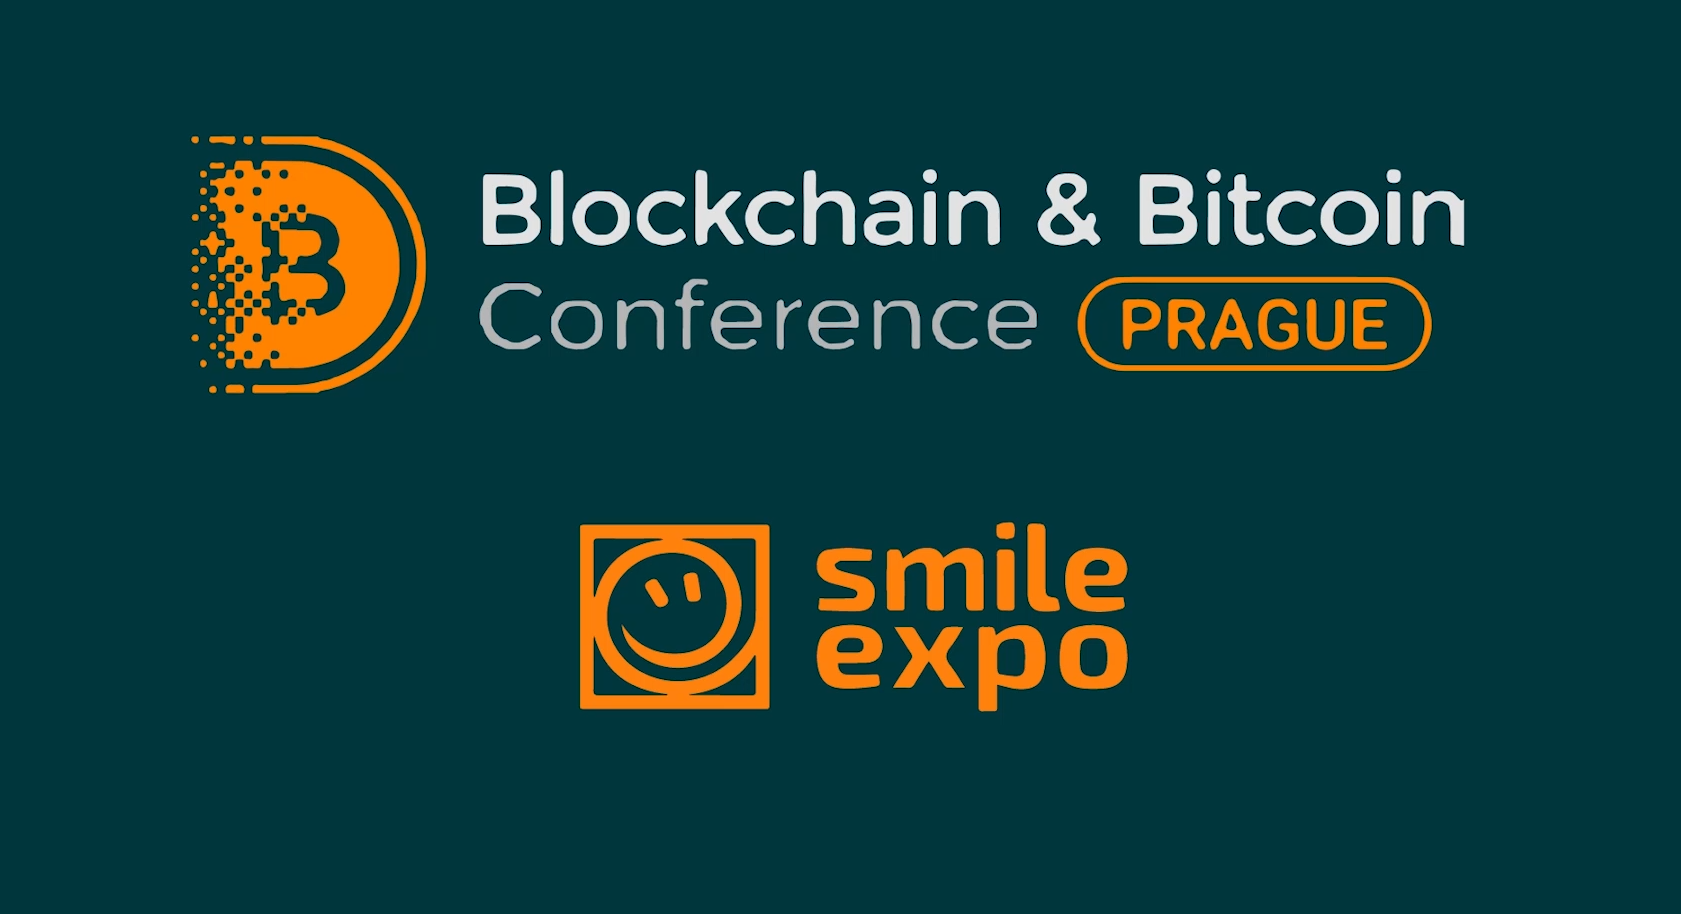 Adel ▲ Seminar ▲ Bitcoin & Blockchain Conference, Prague